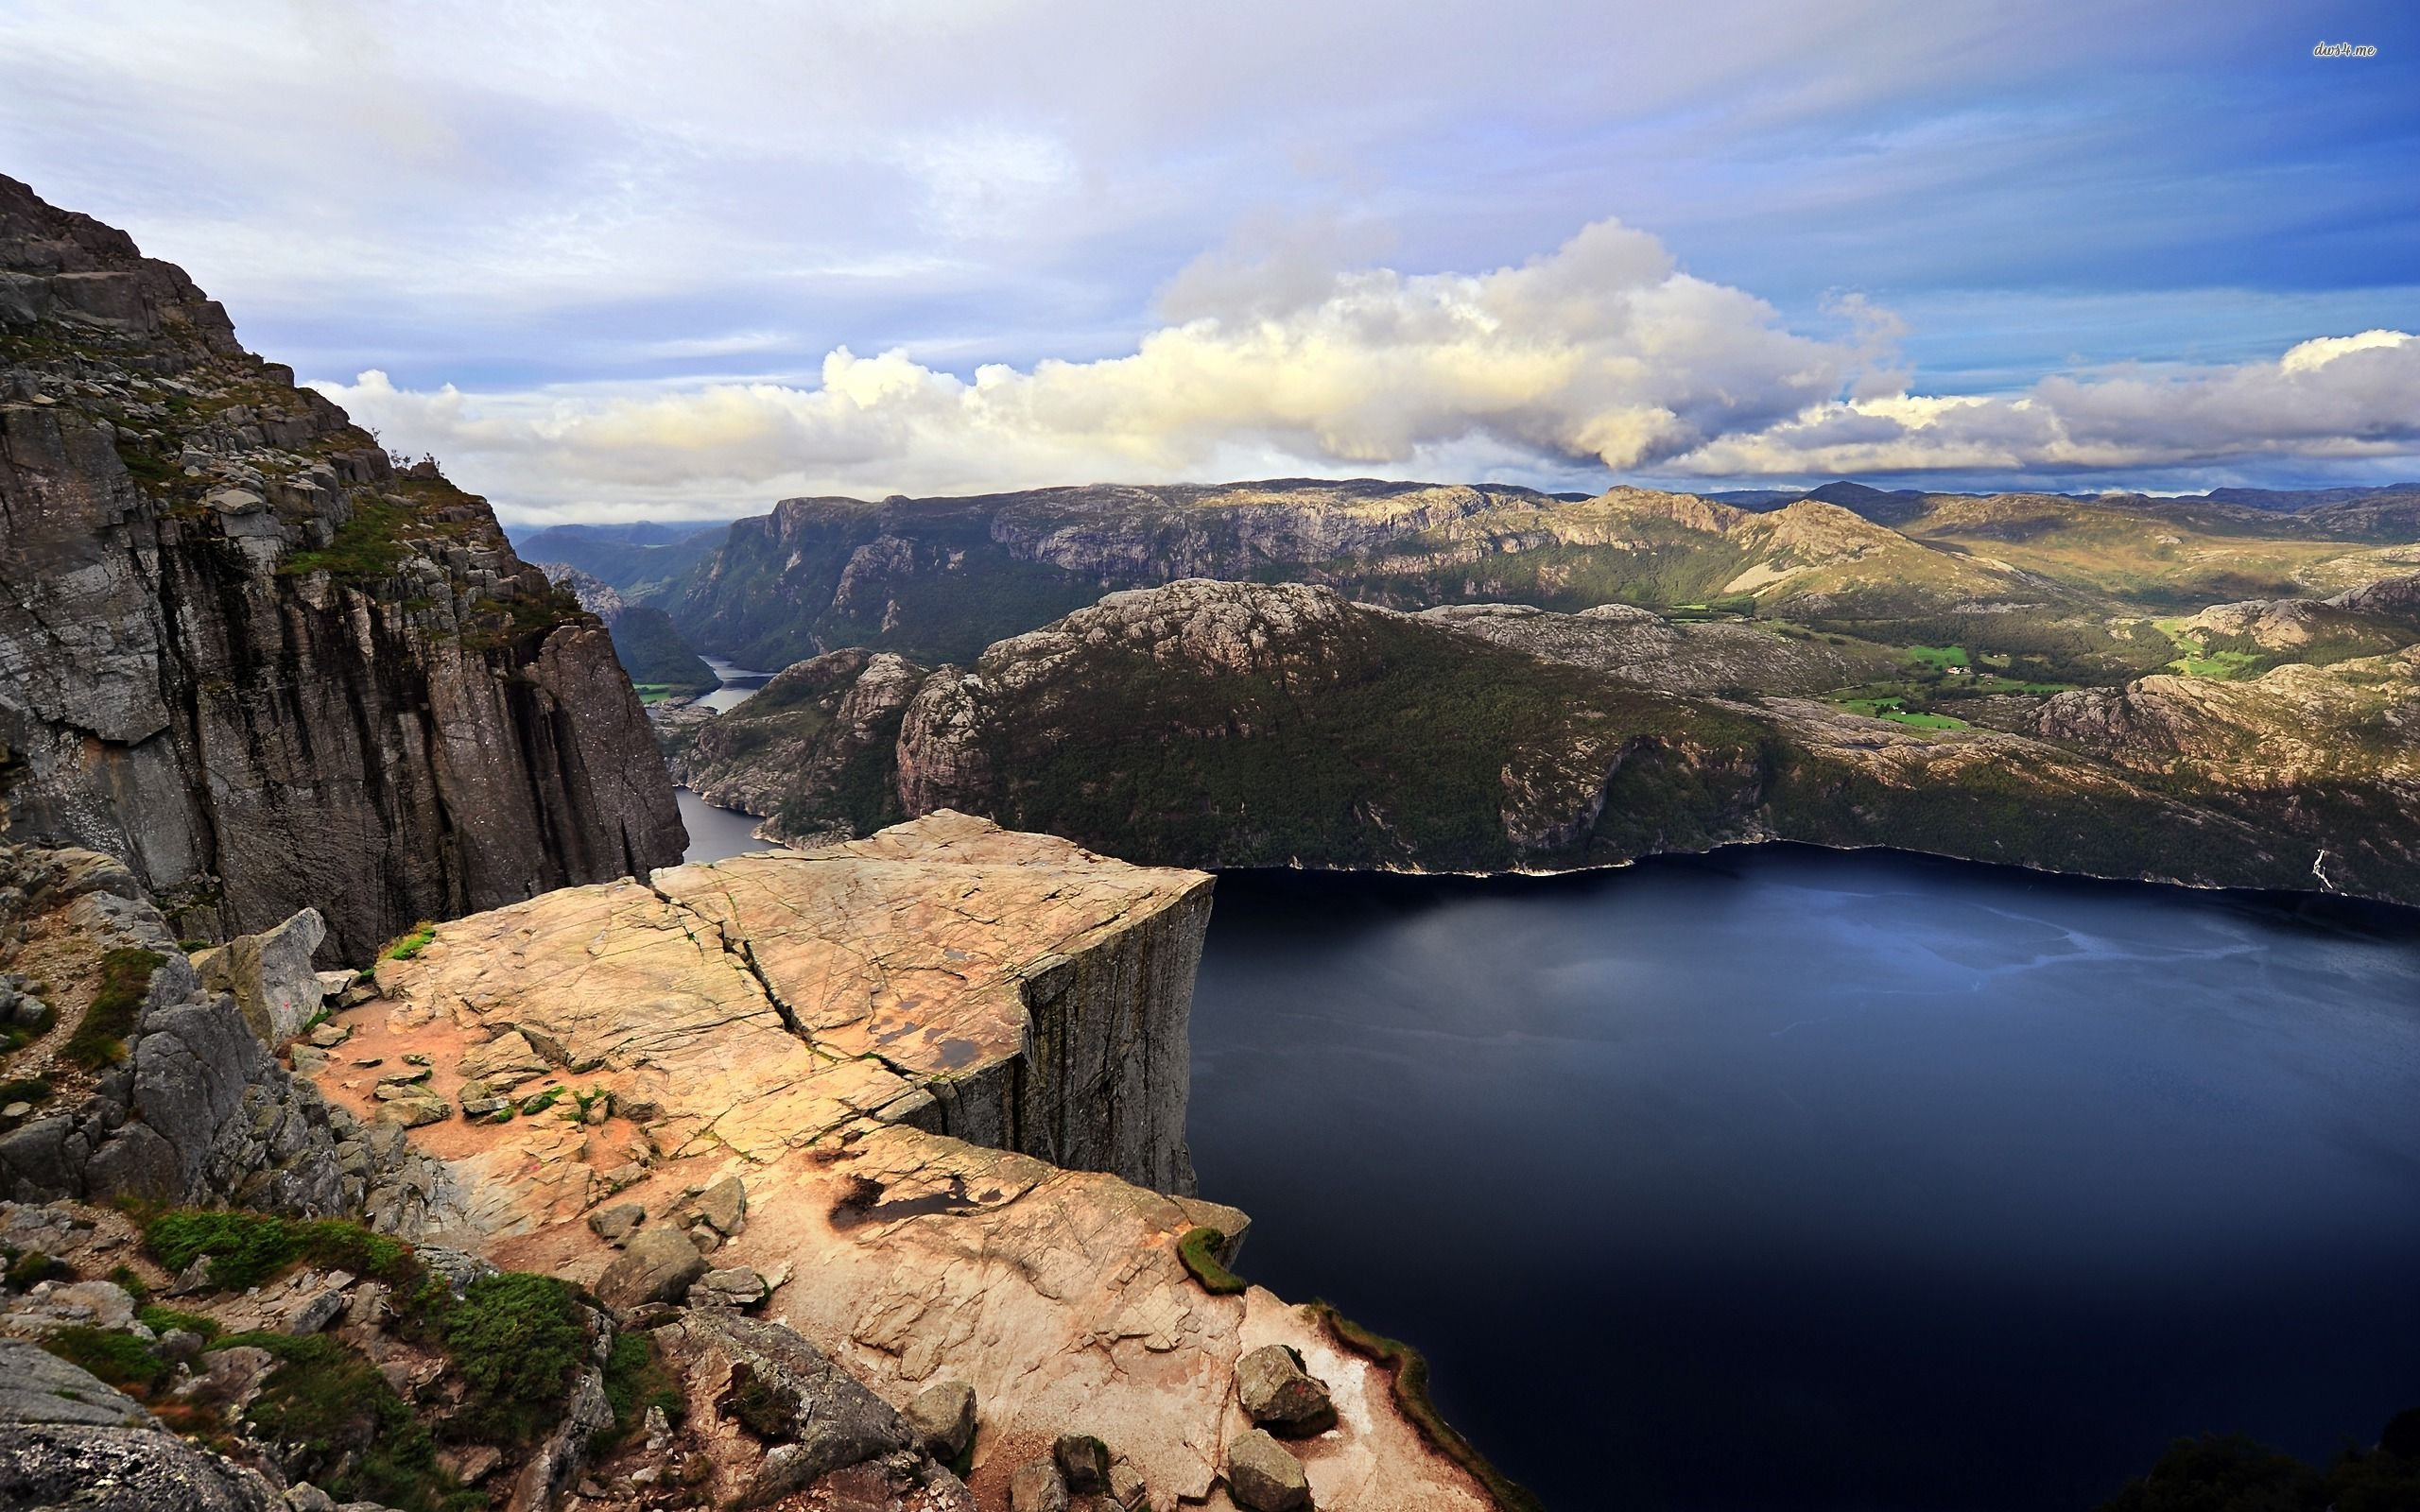 preikestolen-pulpit-rock-norway-europe-lysefjorden-fjord